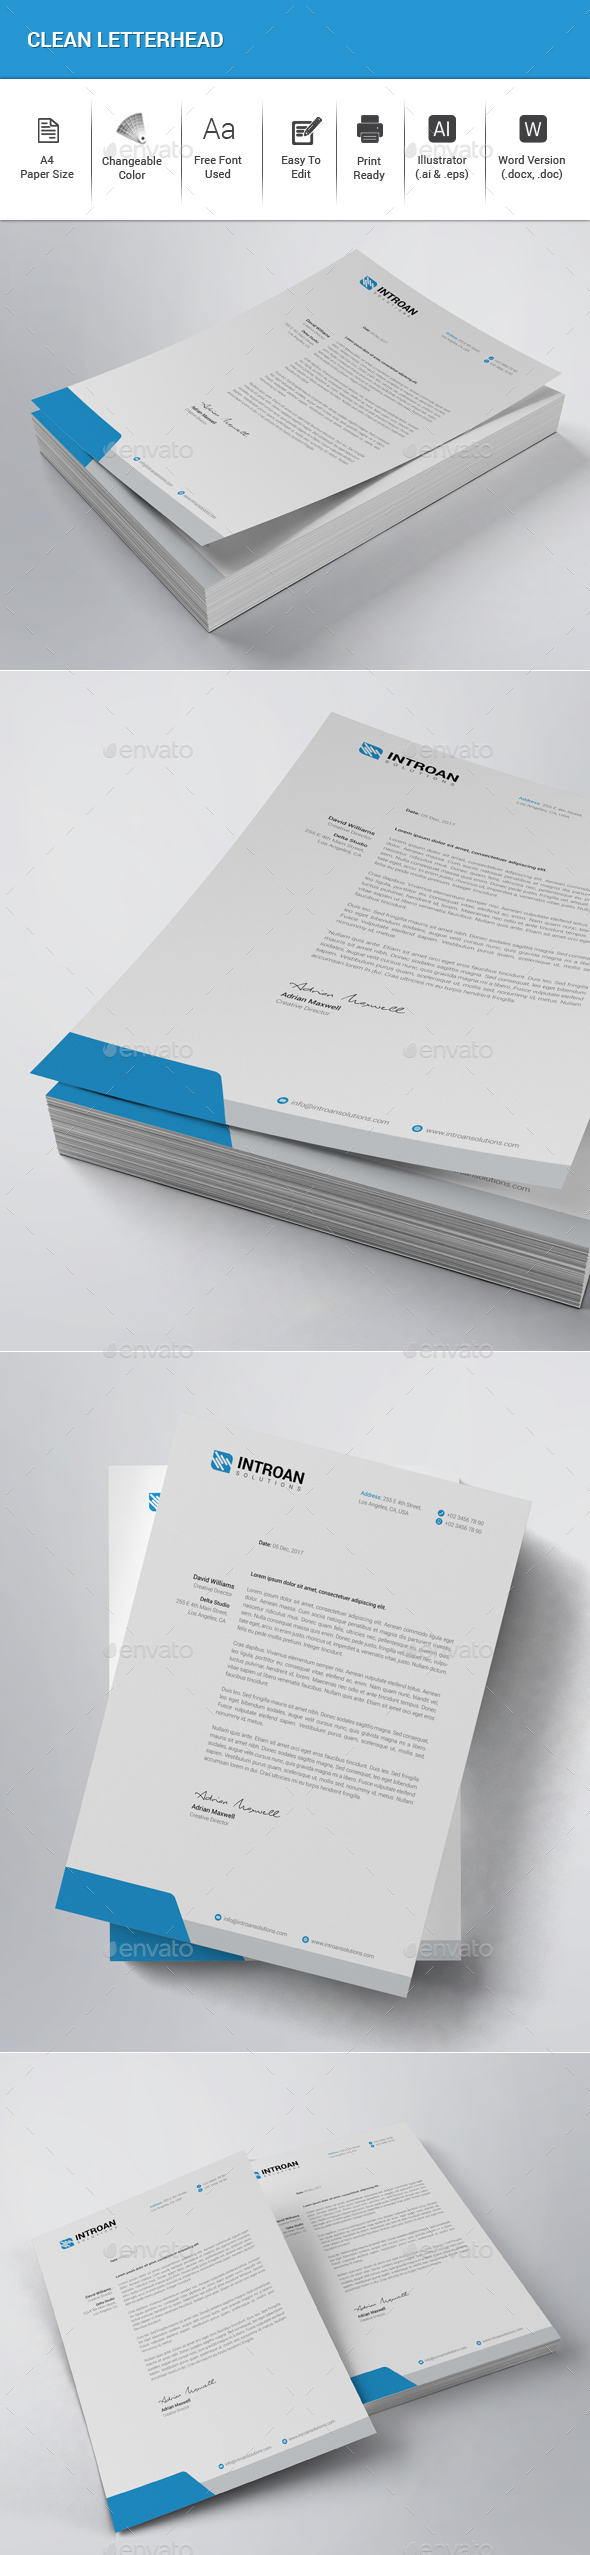 GraphicRiver Clean Letterhead 21084938